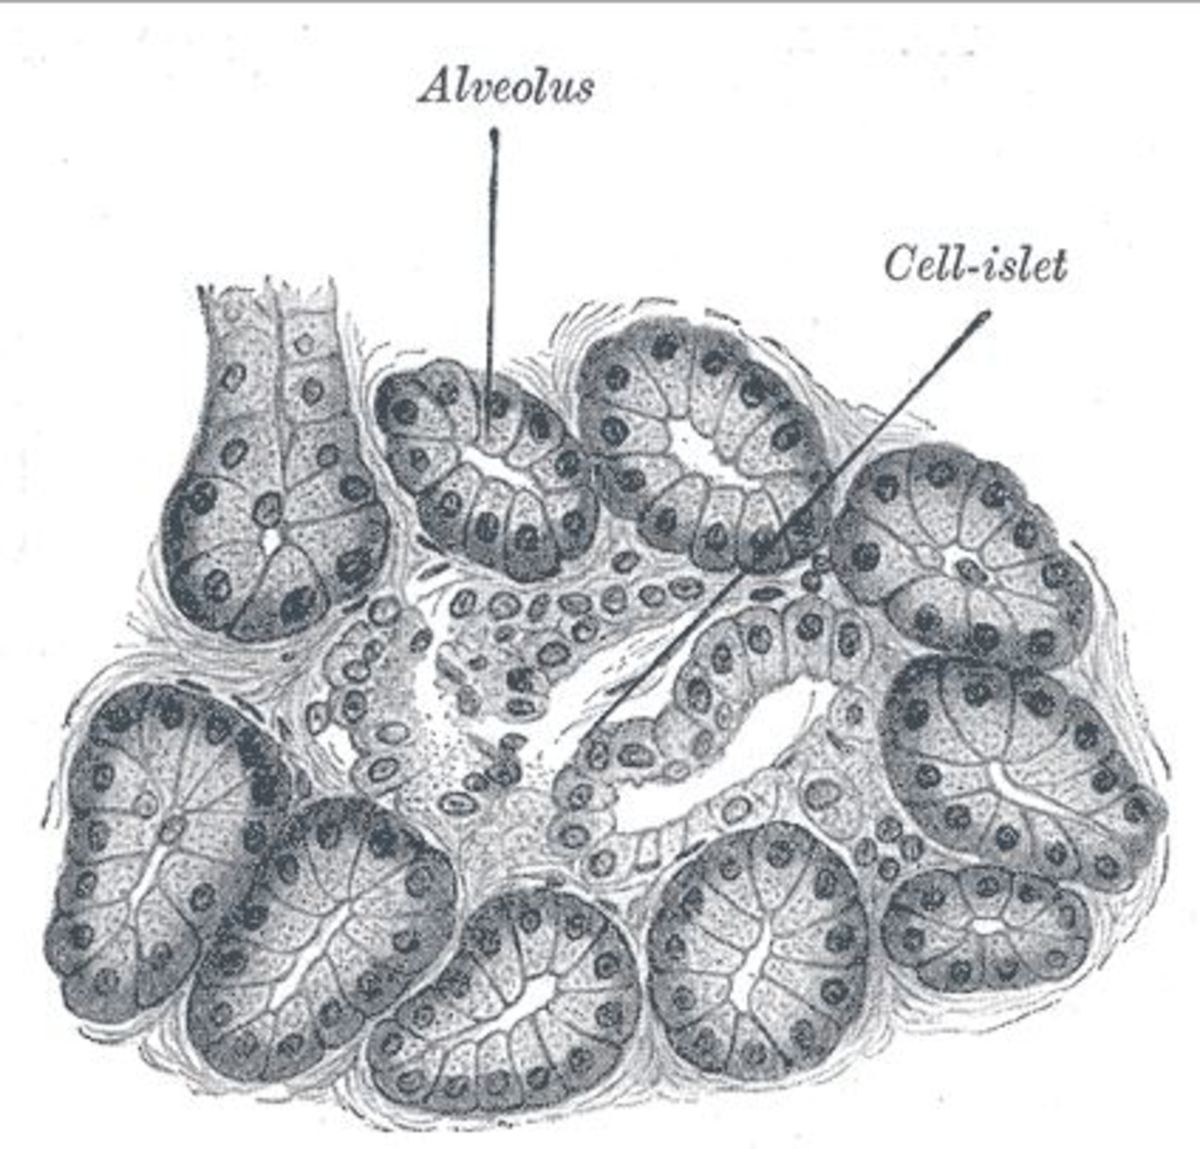 Pancreas of a dog. Alveolus in the illustration refers to the acinar cells which form circular clusters and produce pancreatic enzymes needed for digestion of food. Source: 1918 Anatomy of the Human Body